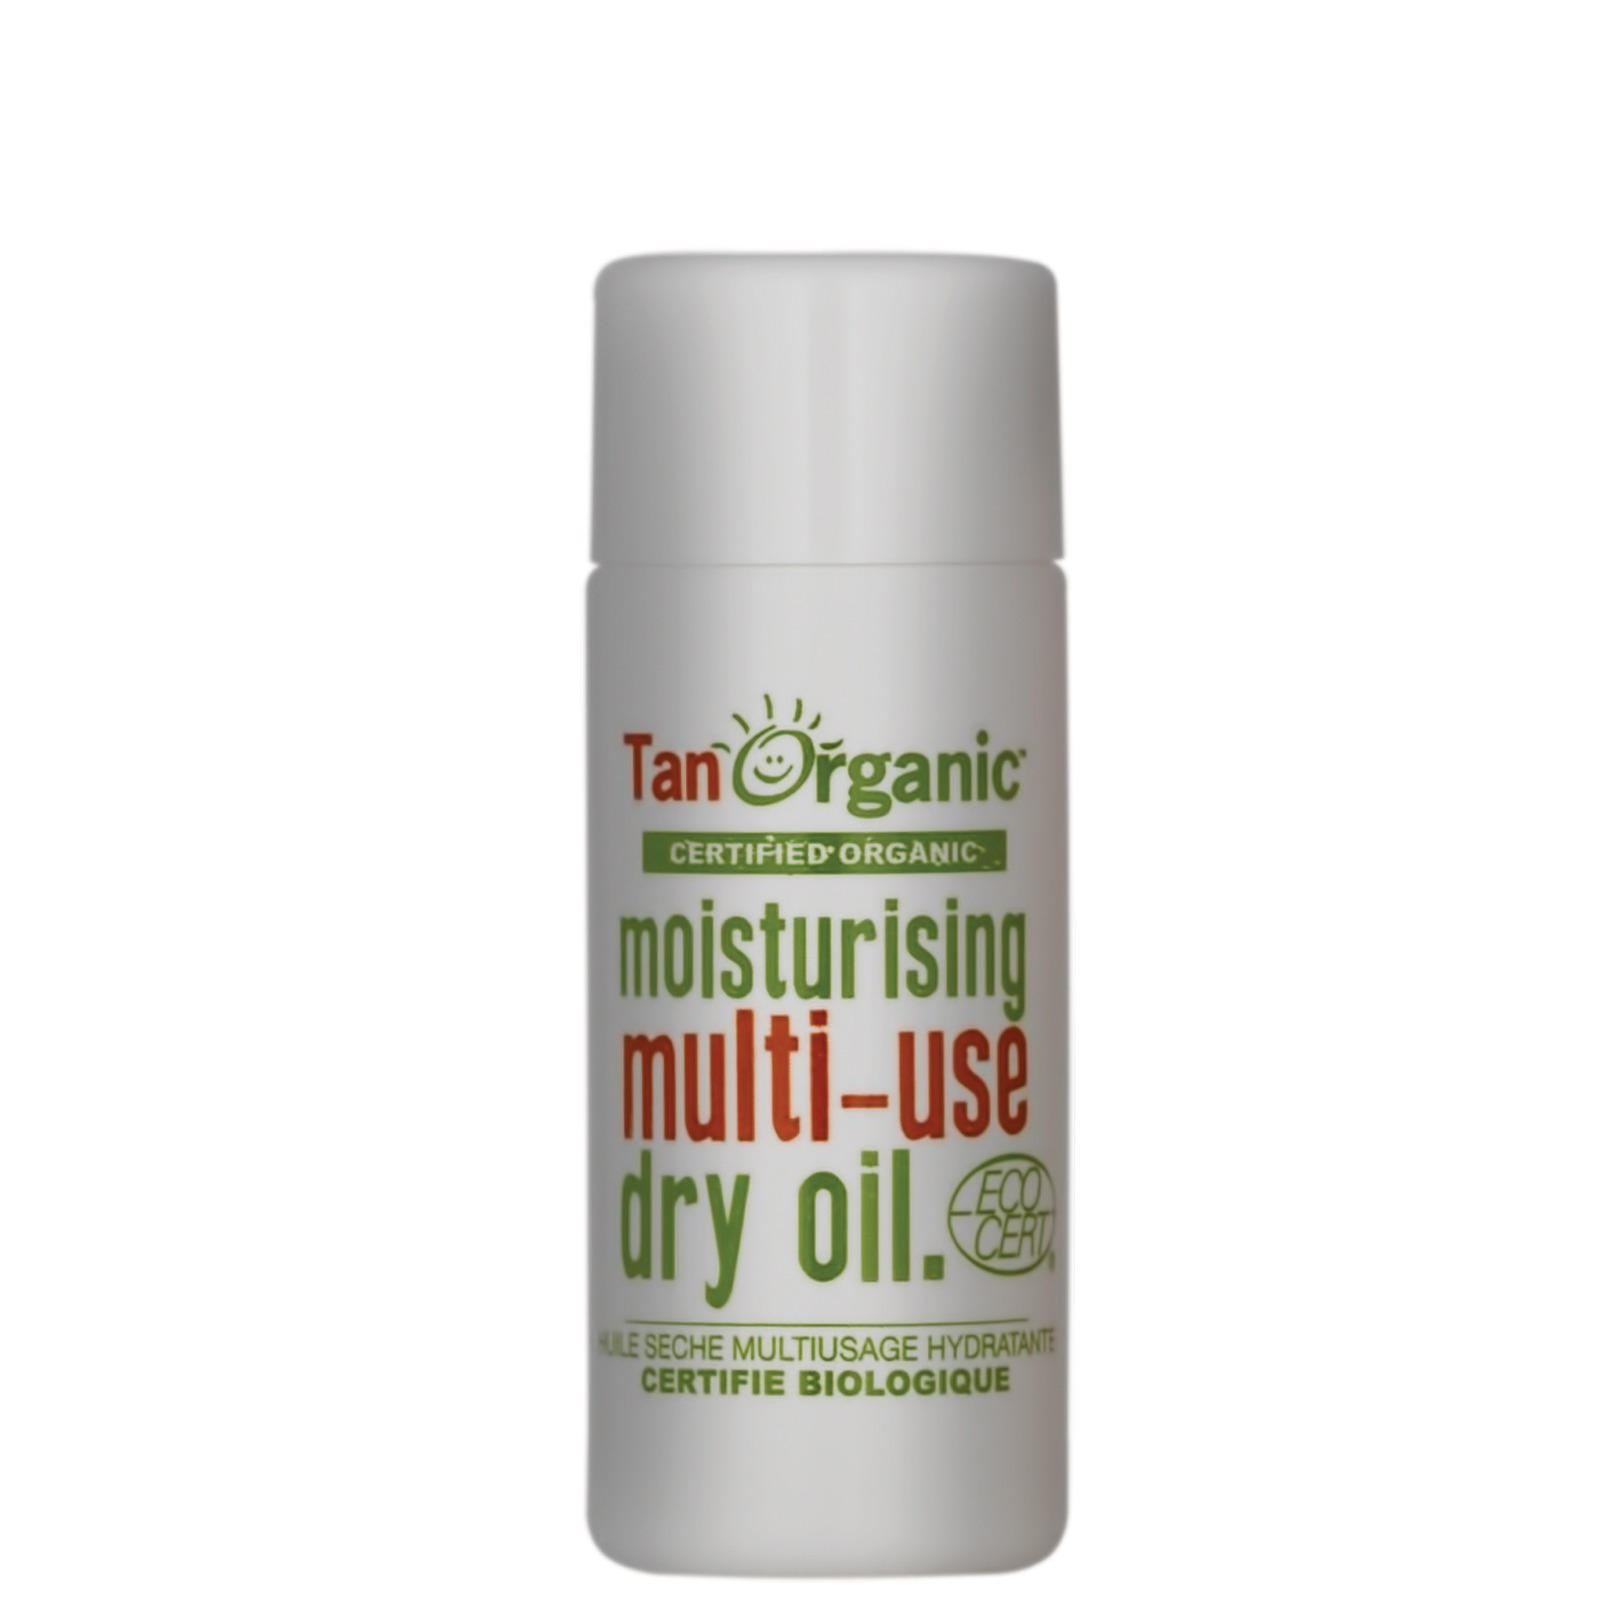 TanOrganic Moisturising Multi Use Dry Oil 25ml